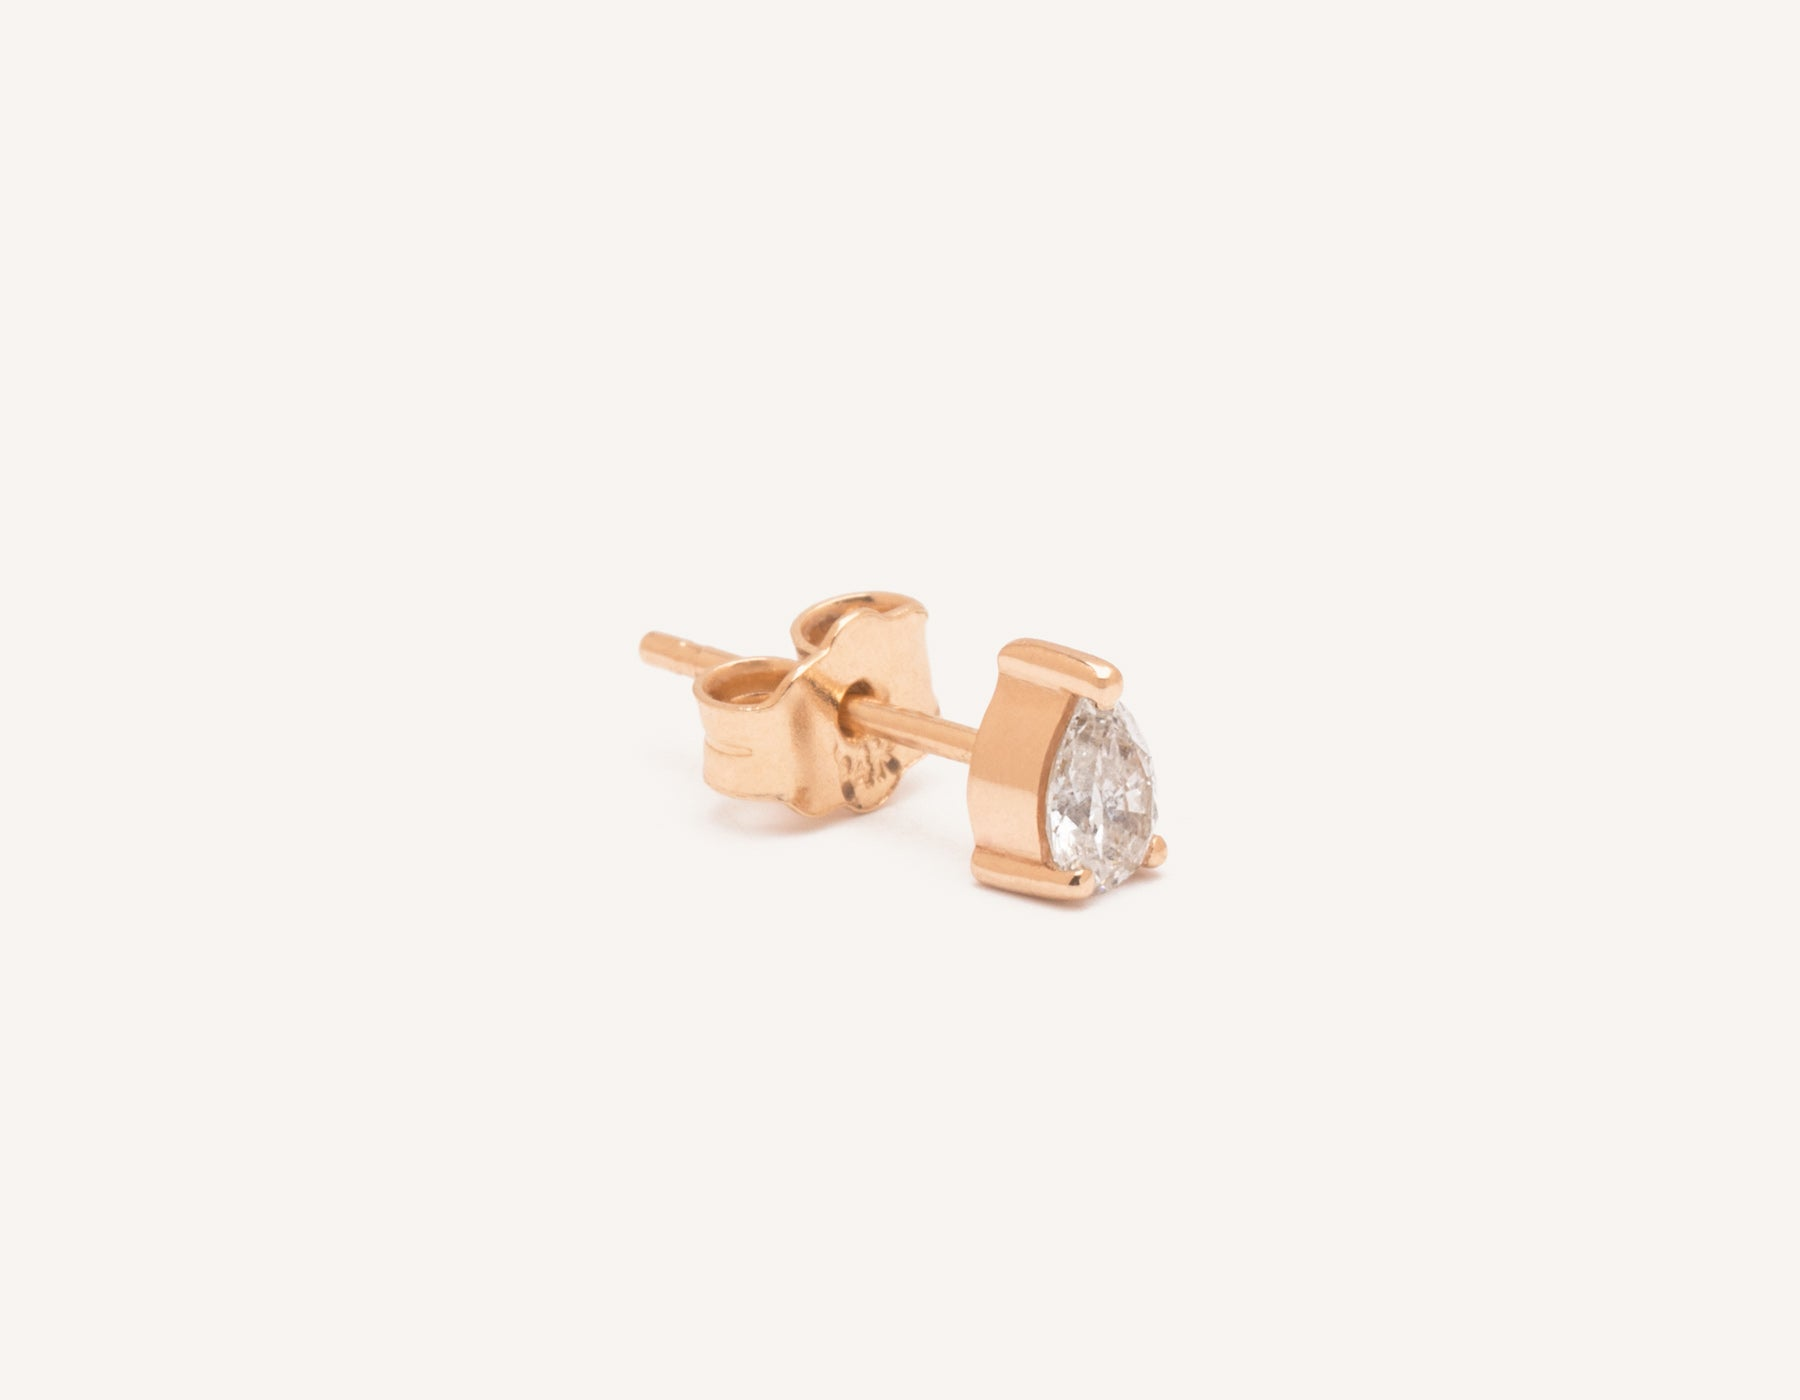 Modern Minimalist .15ct Pear Diamond Stud earrings Vrai and Oro, 14K Rose Gold